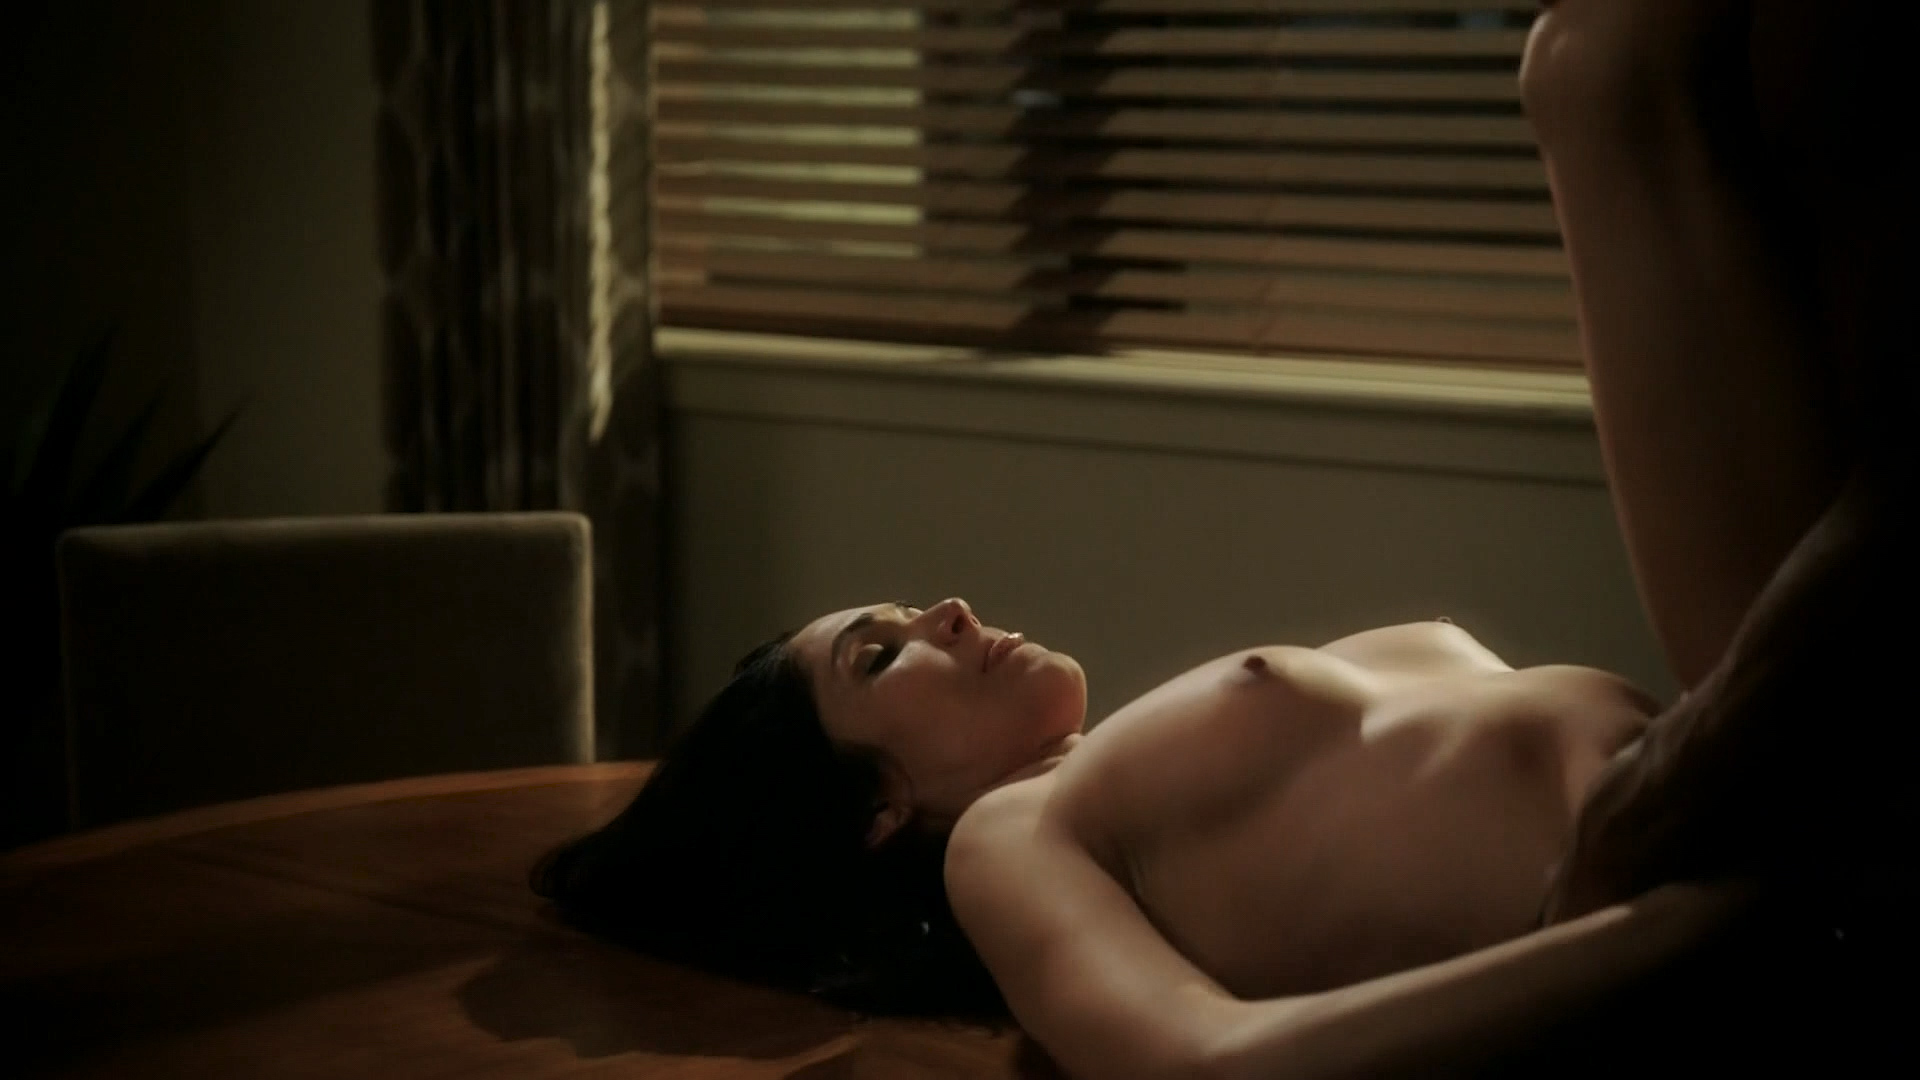 image Lela loren sex scenes in power seasons 1 2